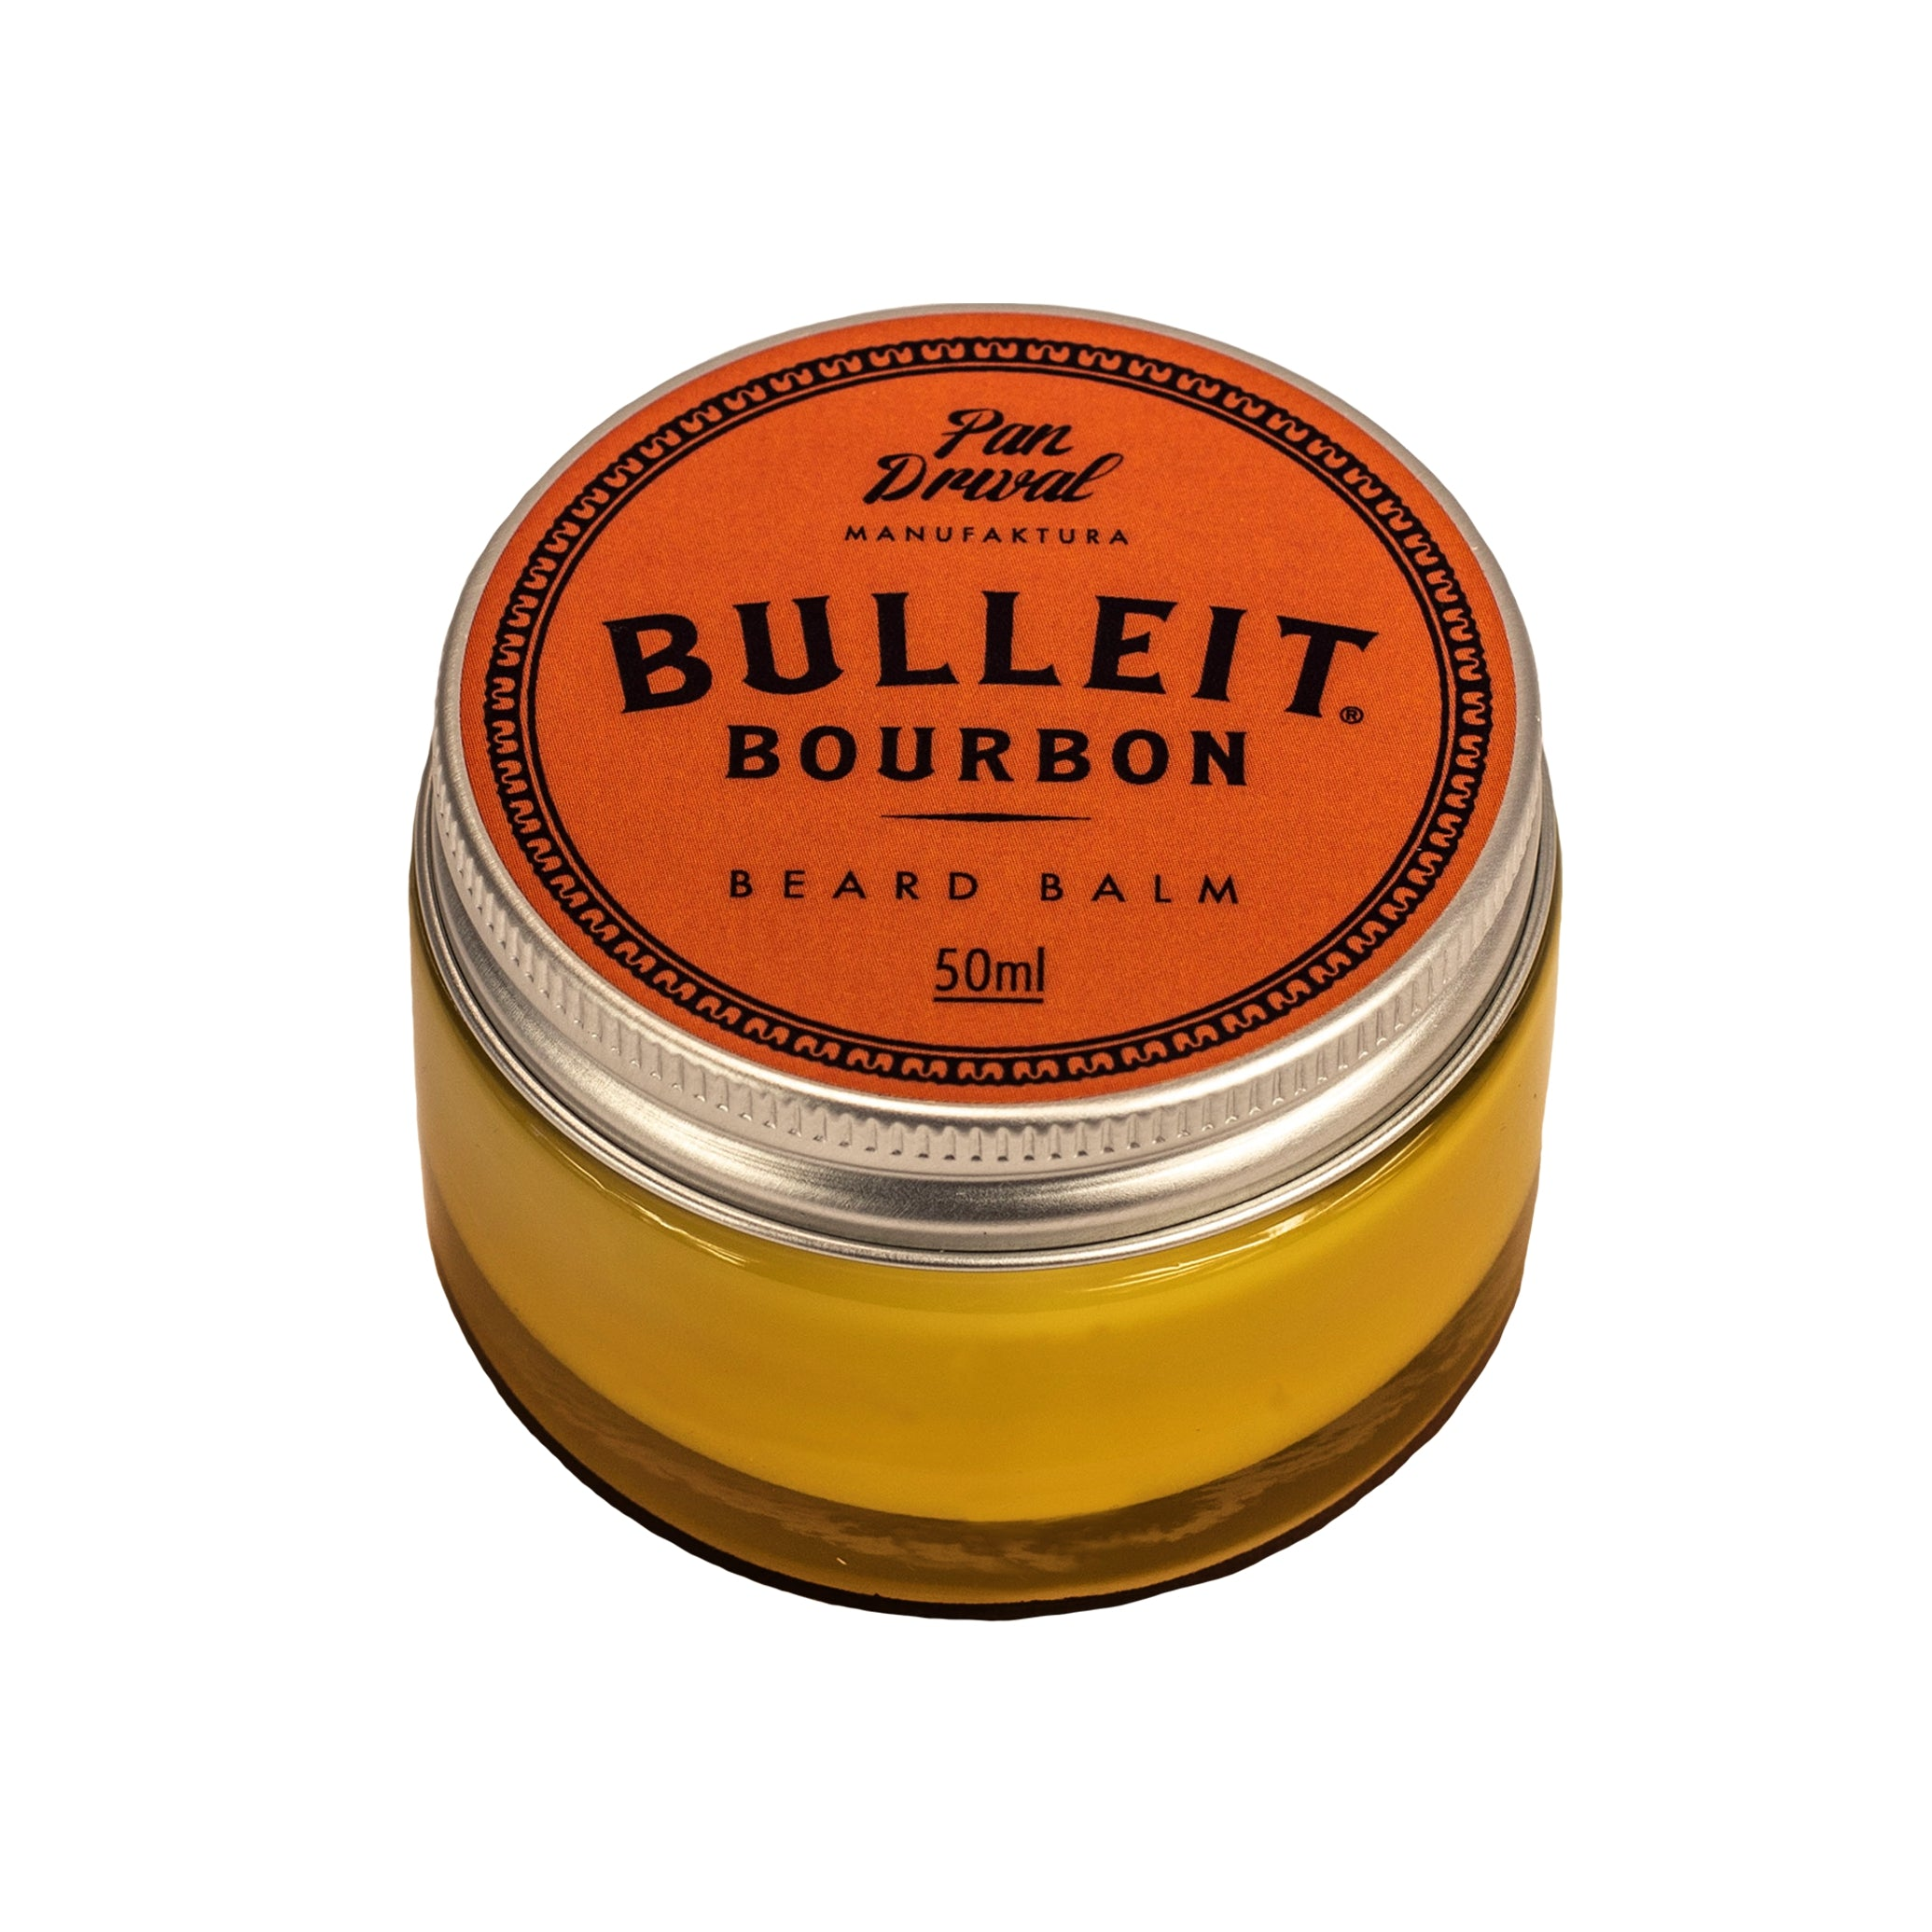 Balsam do brody Pan Drwal X BULLEIT